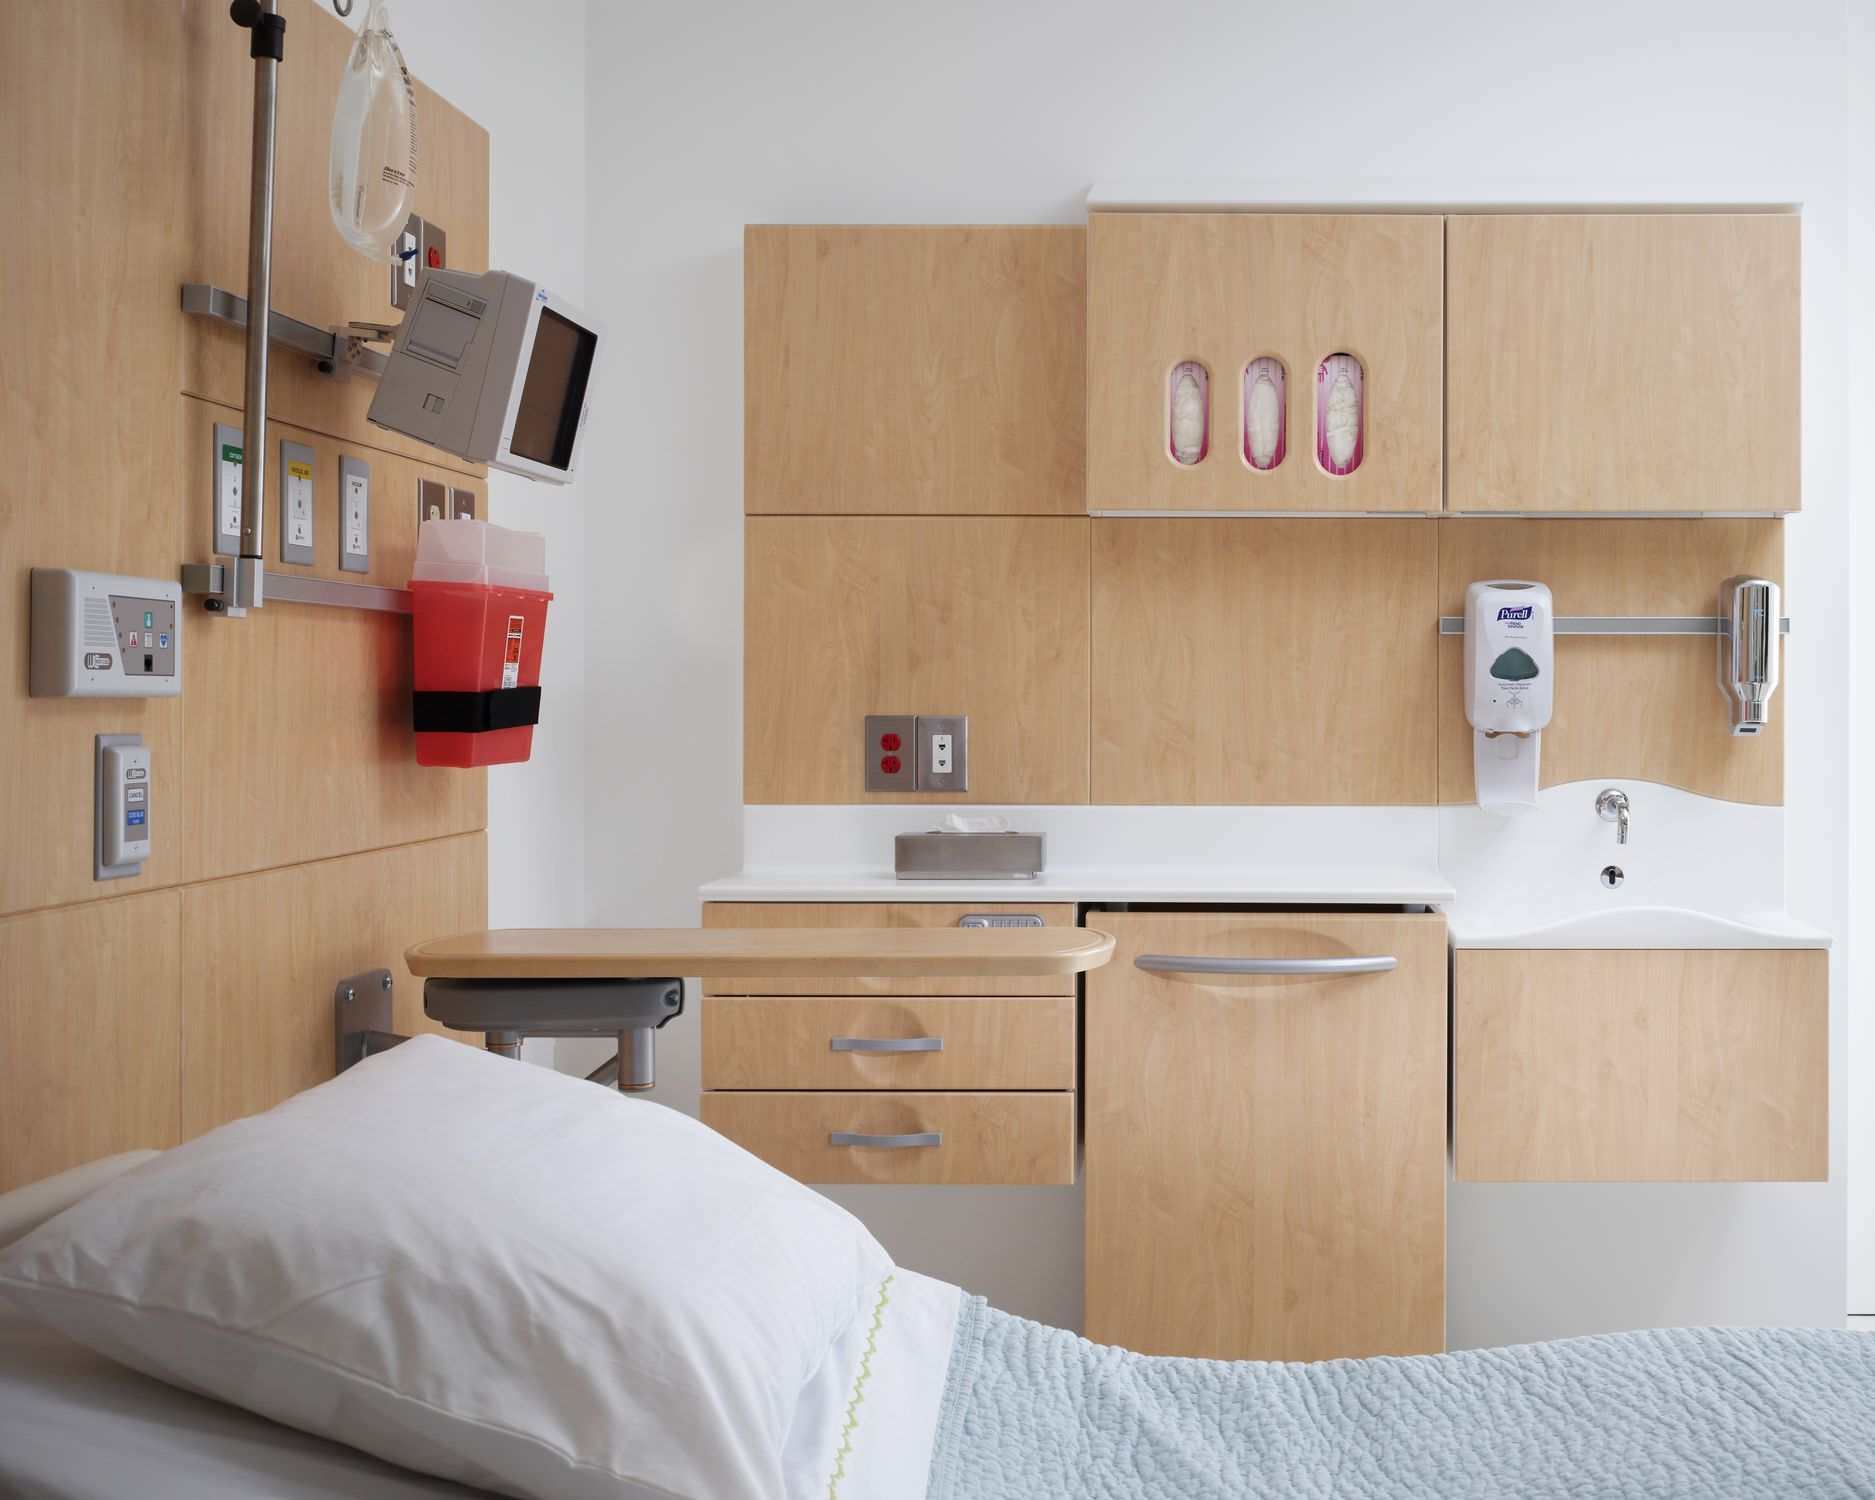 Patient room by Compass System. Room, Living